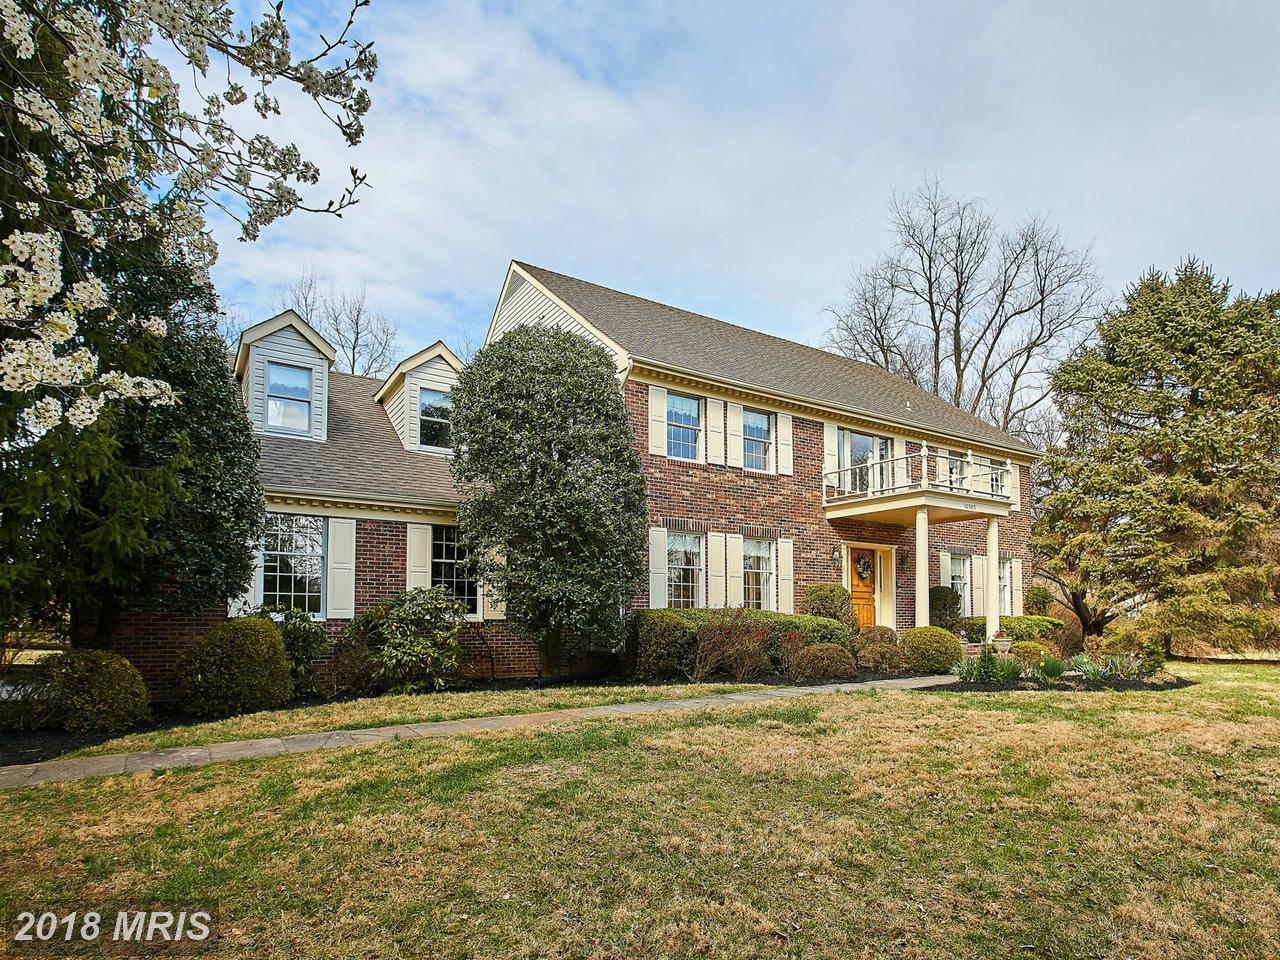 Single Family Home for Sale at Colonial, Detached - POTOMAC, MD 10505 WHITE CLOVER TER Potomac, Maryland,20854 United States